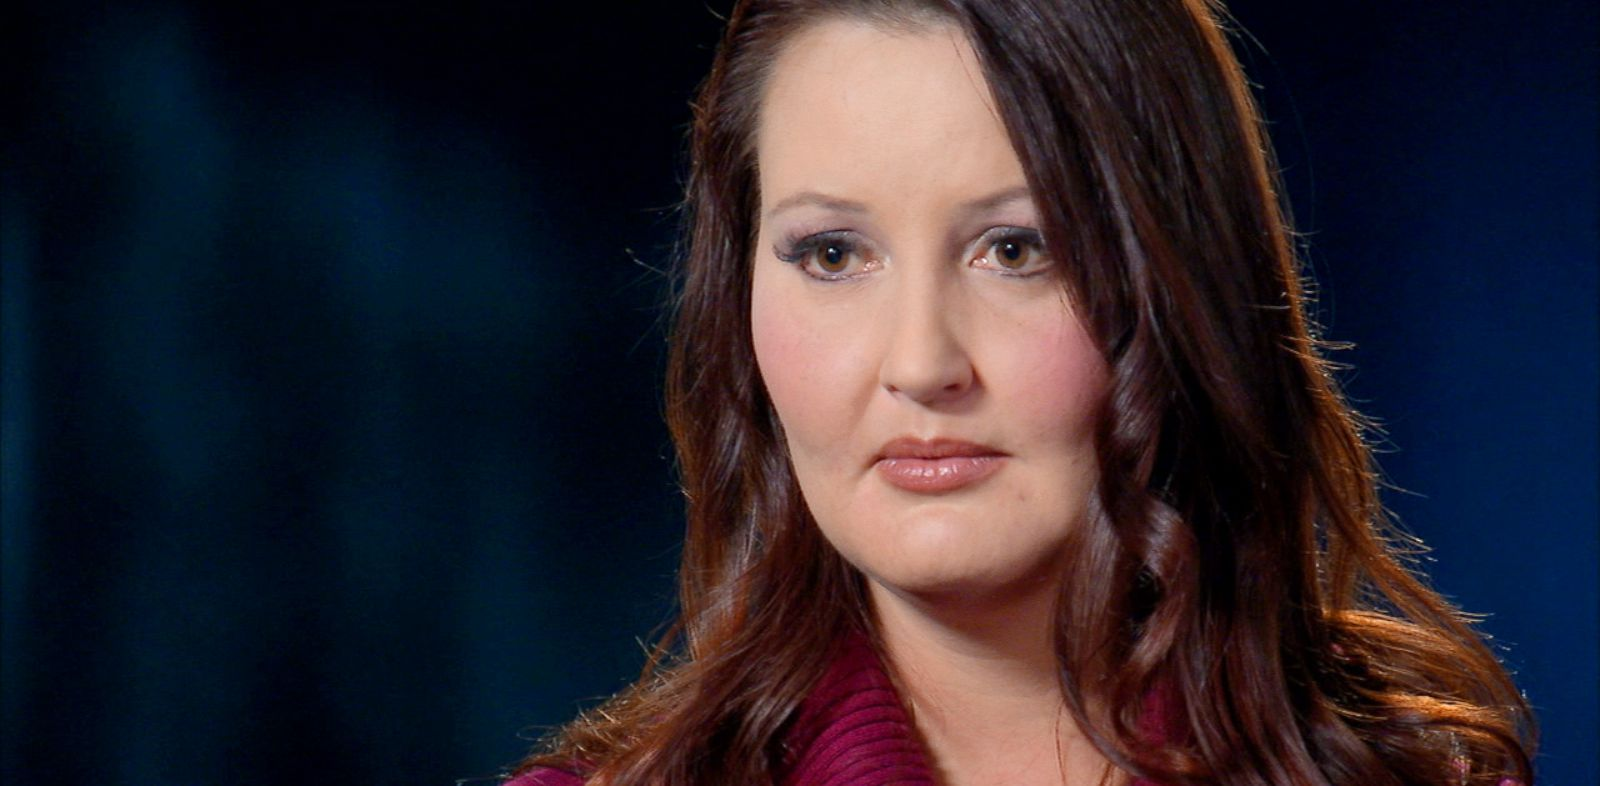 PHOTO: Gypsy Willis, the mistress of Dr. Martin MacNeill, sat down with ABC News Dan Abrams for an exclusive interview after MacNeill was found guilty of murdering his wife.